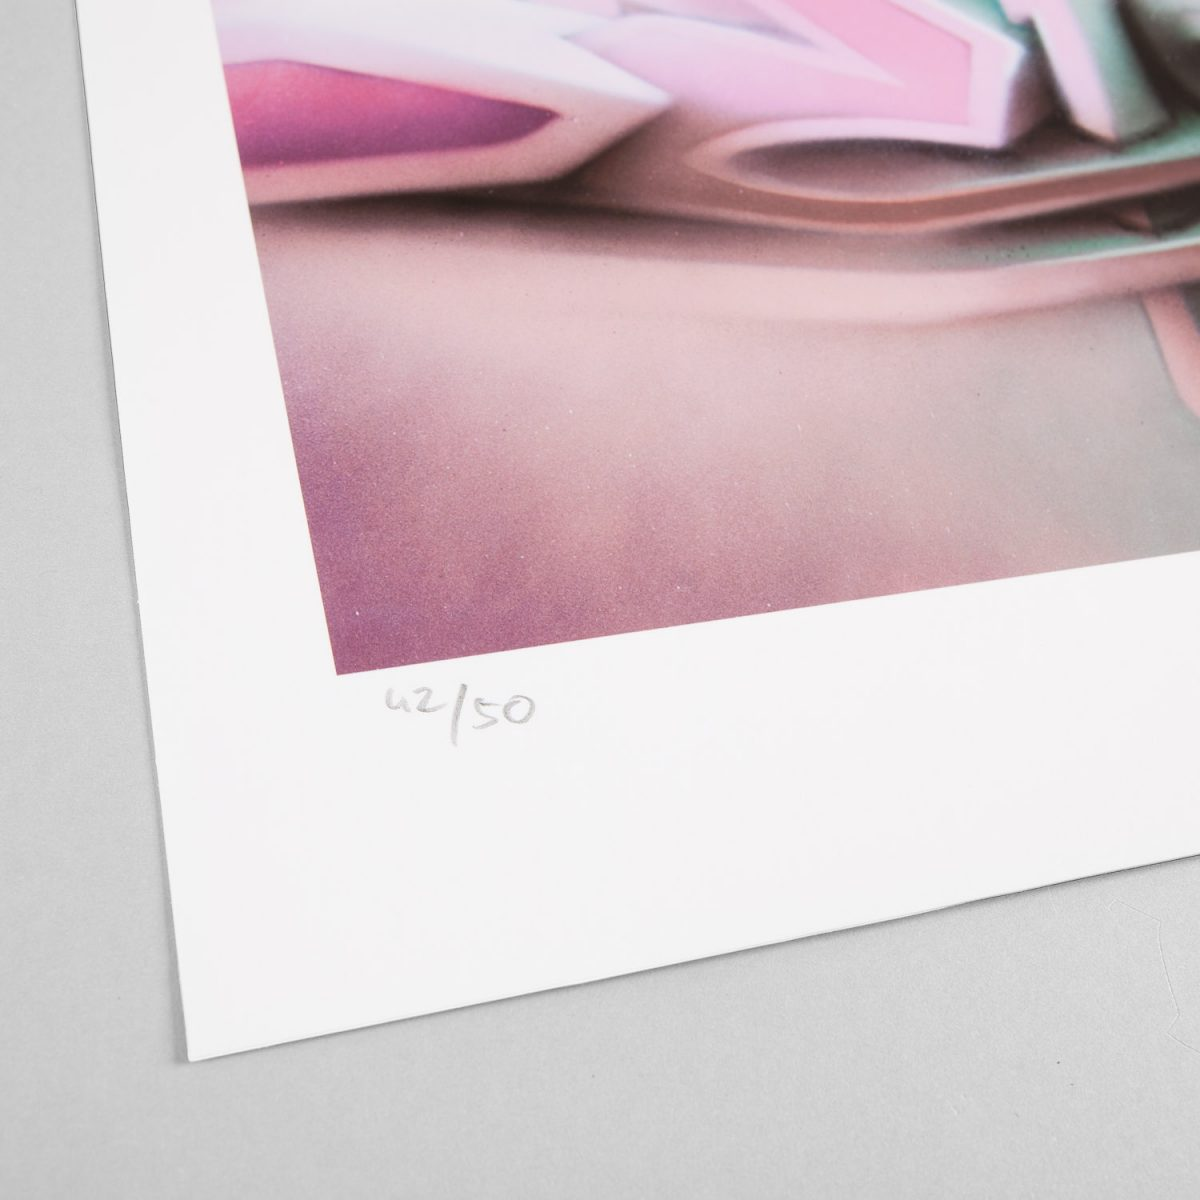 DAIM | ''DEIM $? Dusty Pink'' | Giclée FineArt Print on 290 gsm Moab Rag Natural Paper | 53,34 x 35,56 cm / 21 x 14 inch | 2019 | Edition of 50 + 5 AP + 3 PP, handsigned, numbered and with Certificate of Authenticity of 1xRUN | © DAIM | Courtesy: 1xRUN